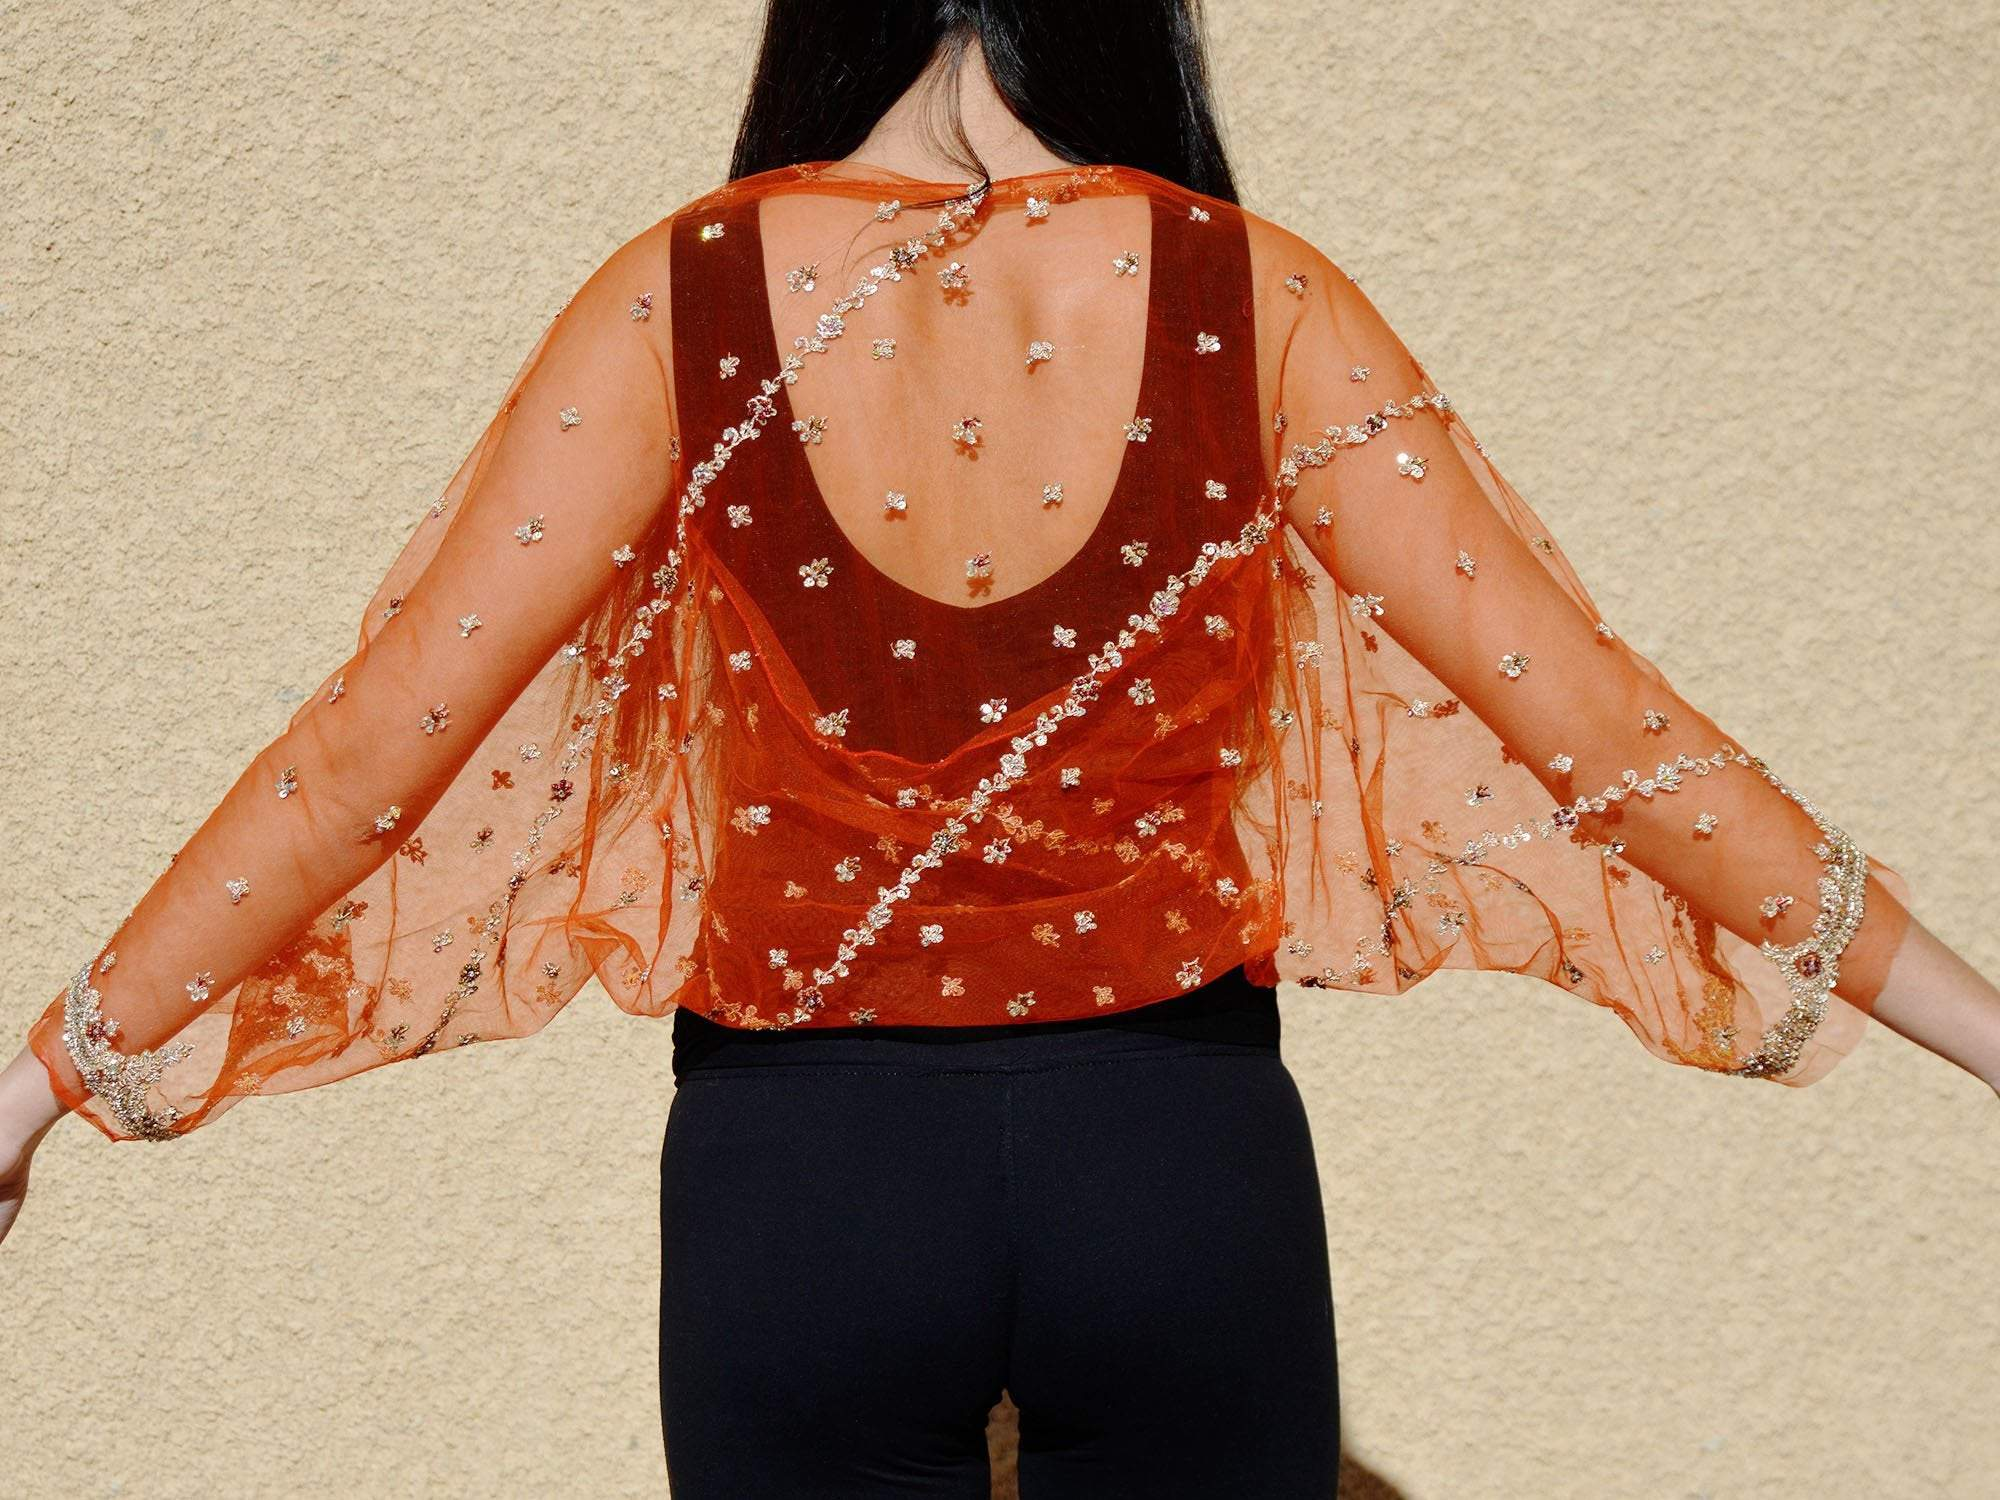 Back view of woman wearing a sheer orange bridal shrug jacket with gold beads.